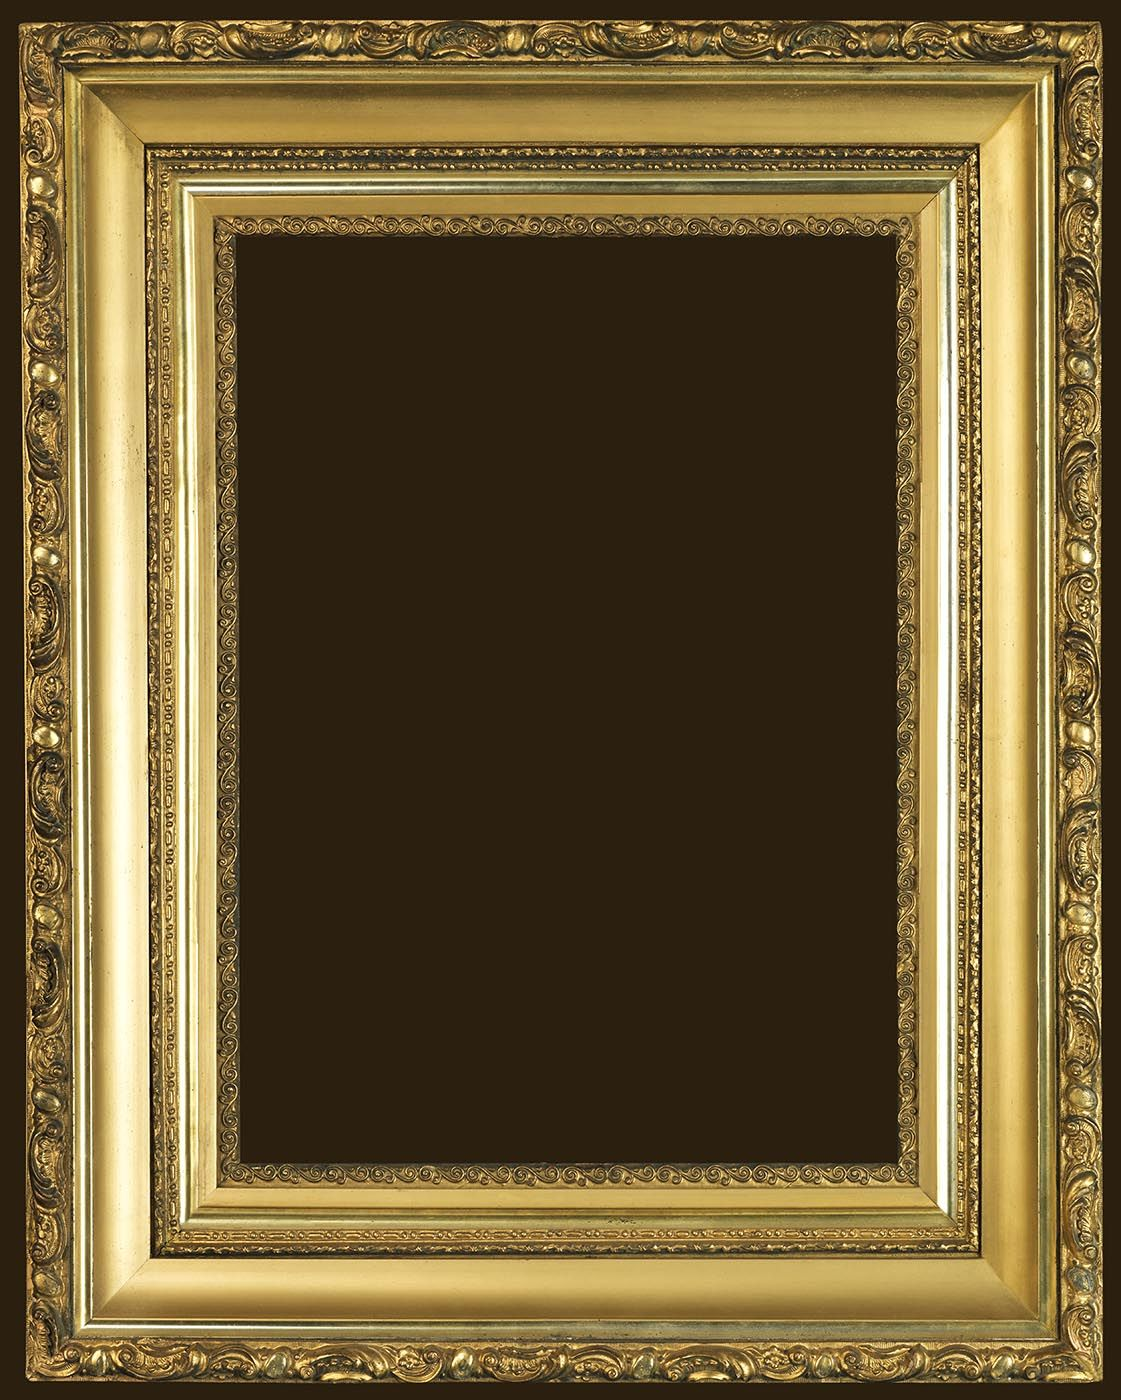 American 19th Century 23 1 2 X 16 1 2 X 5 1 4 Diegosalazar Com Frames Gold Picture Frames Antique Frames Frame